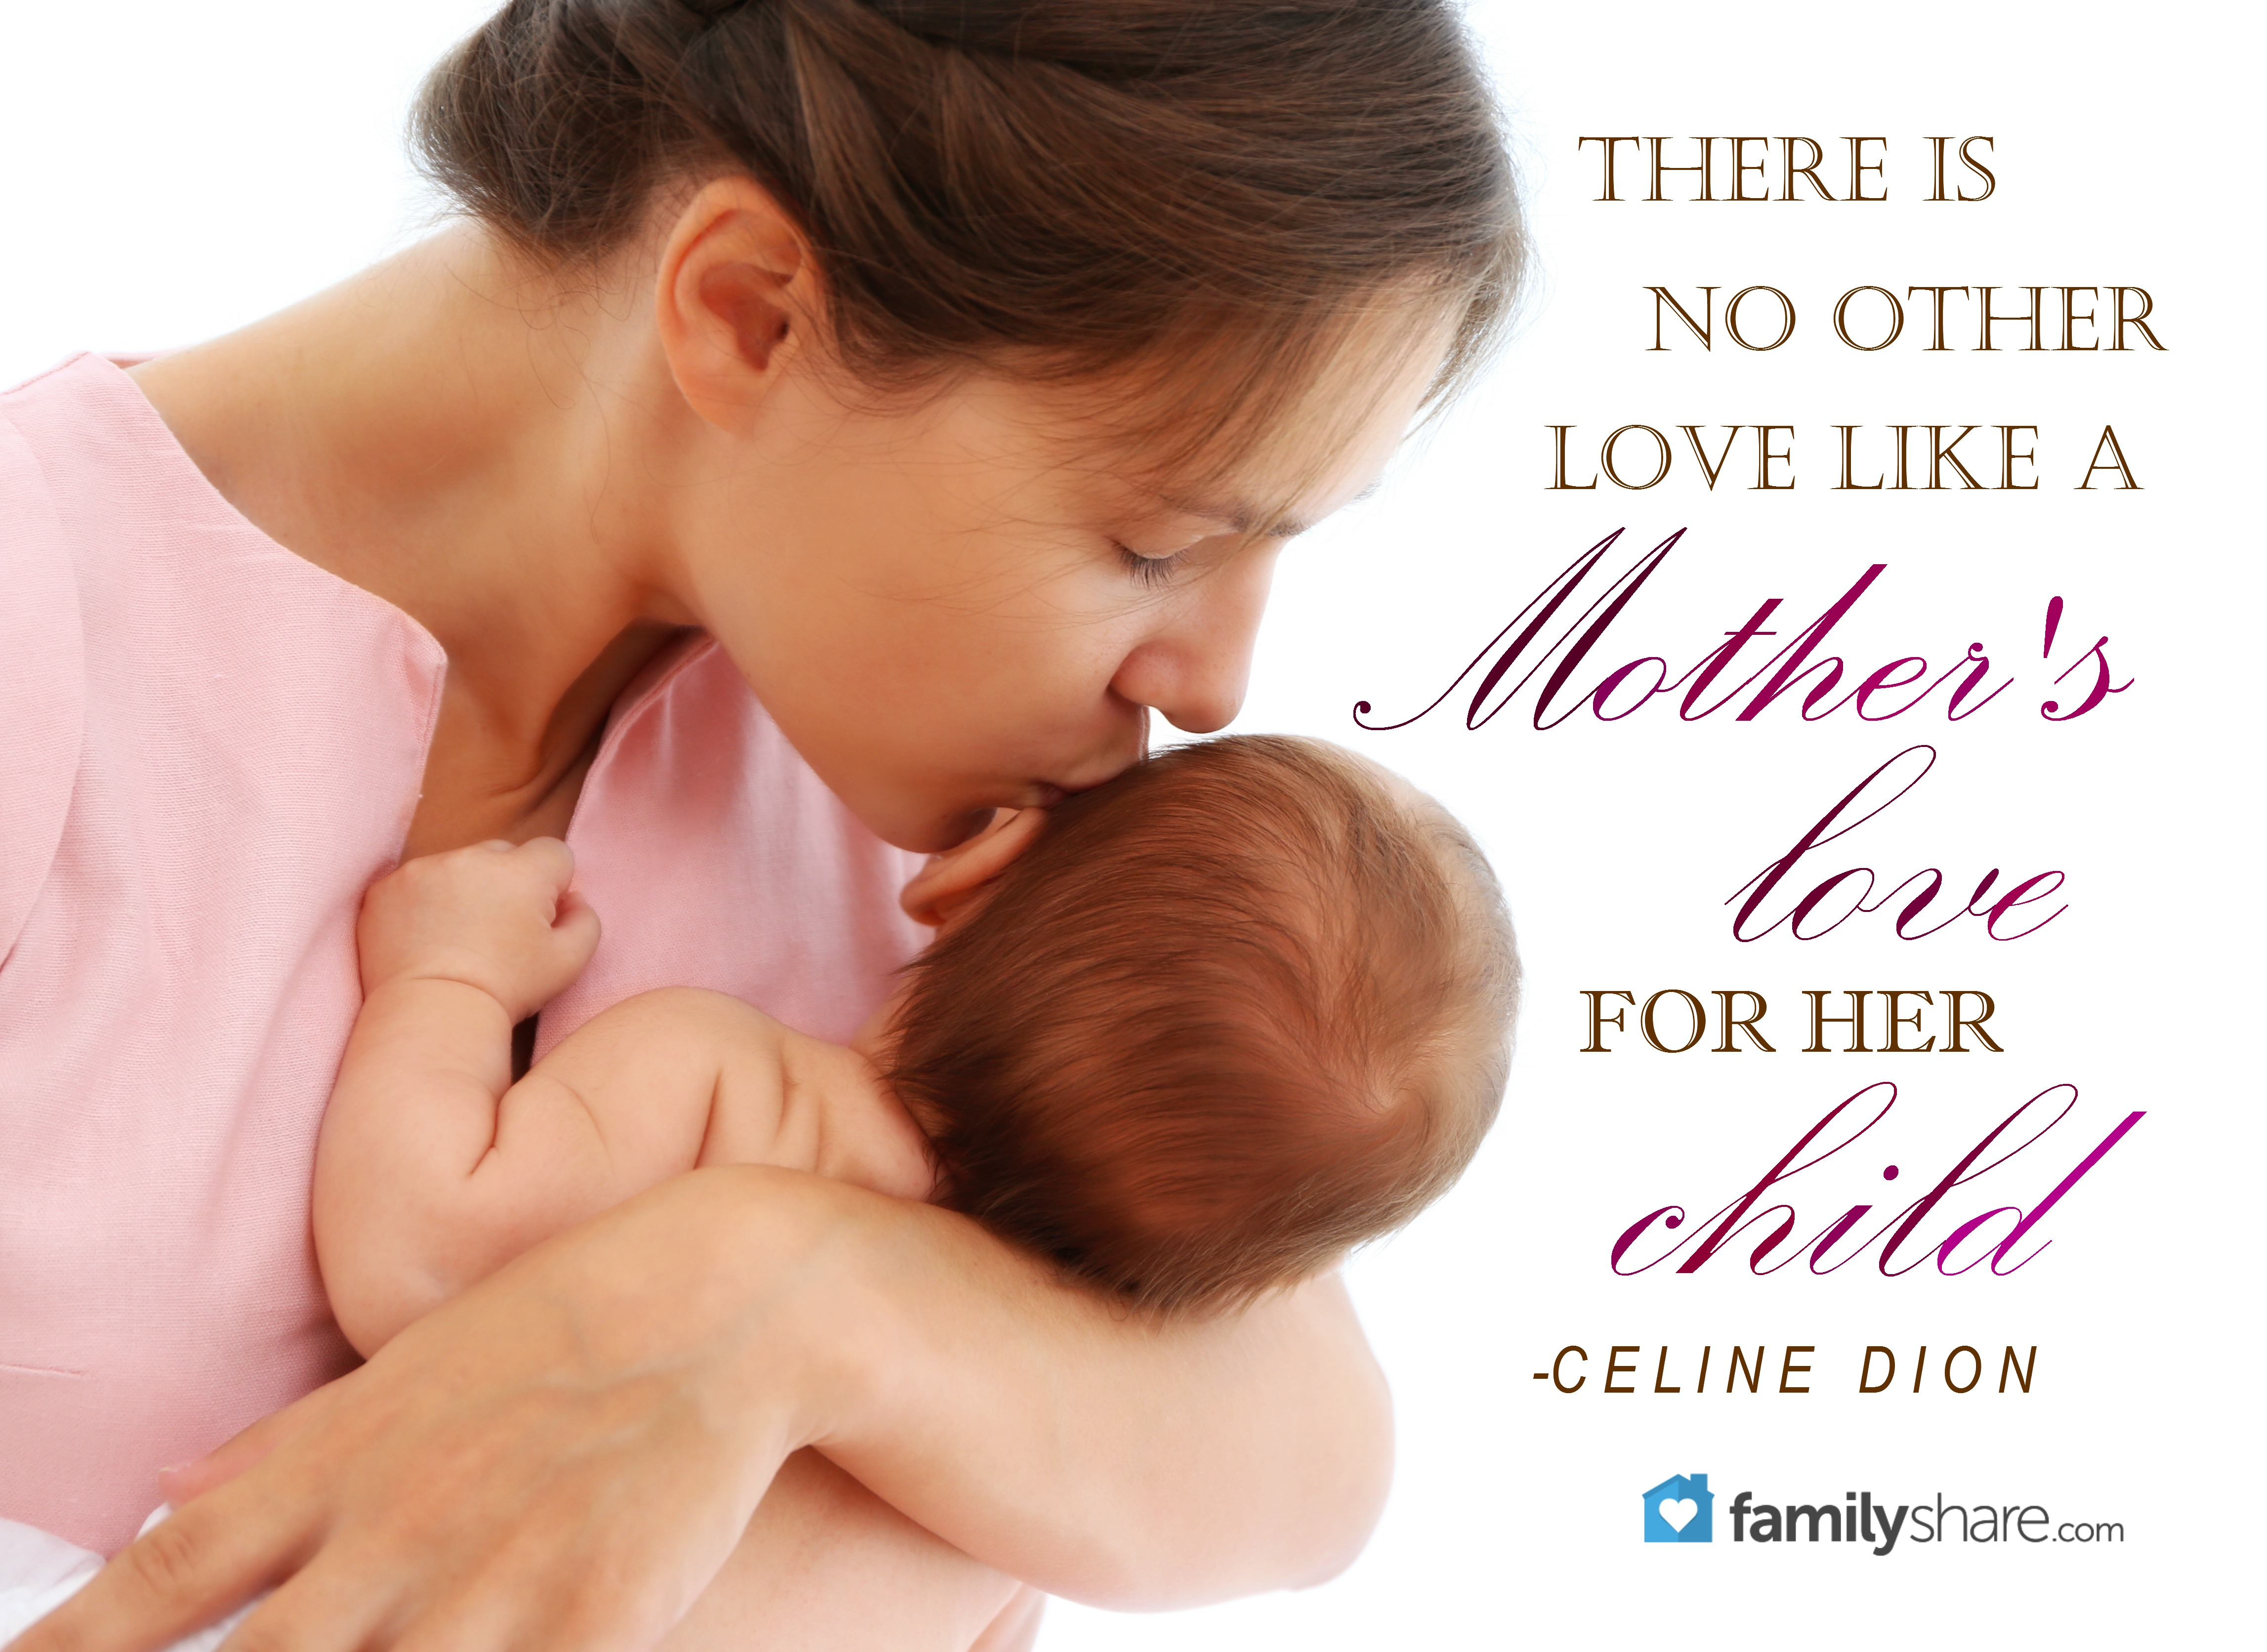 There is no other love like a Mother's love for her child